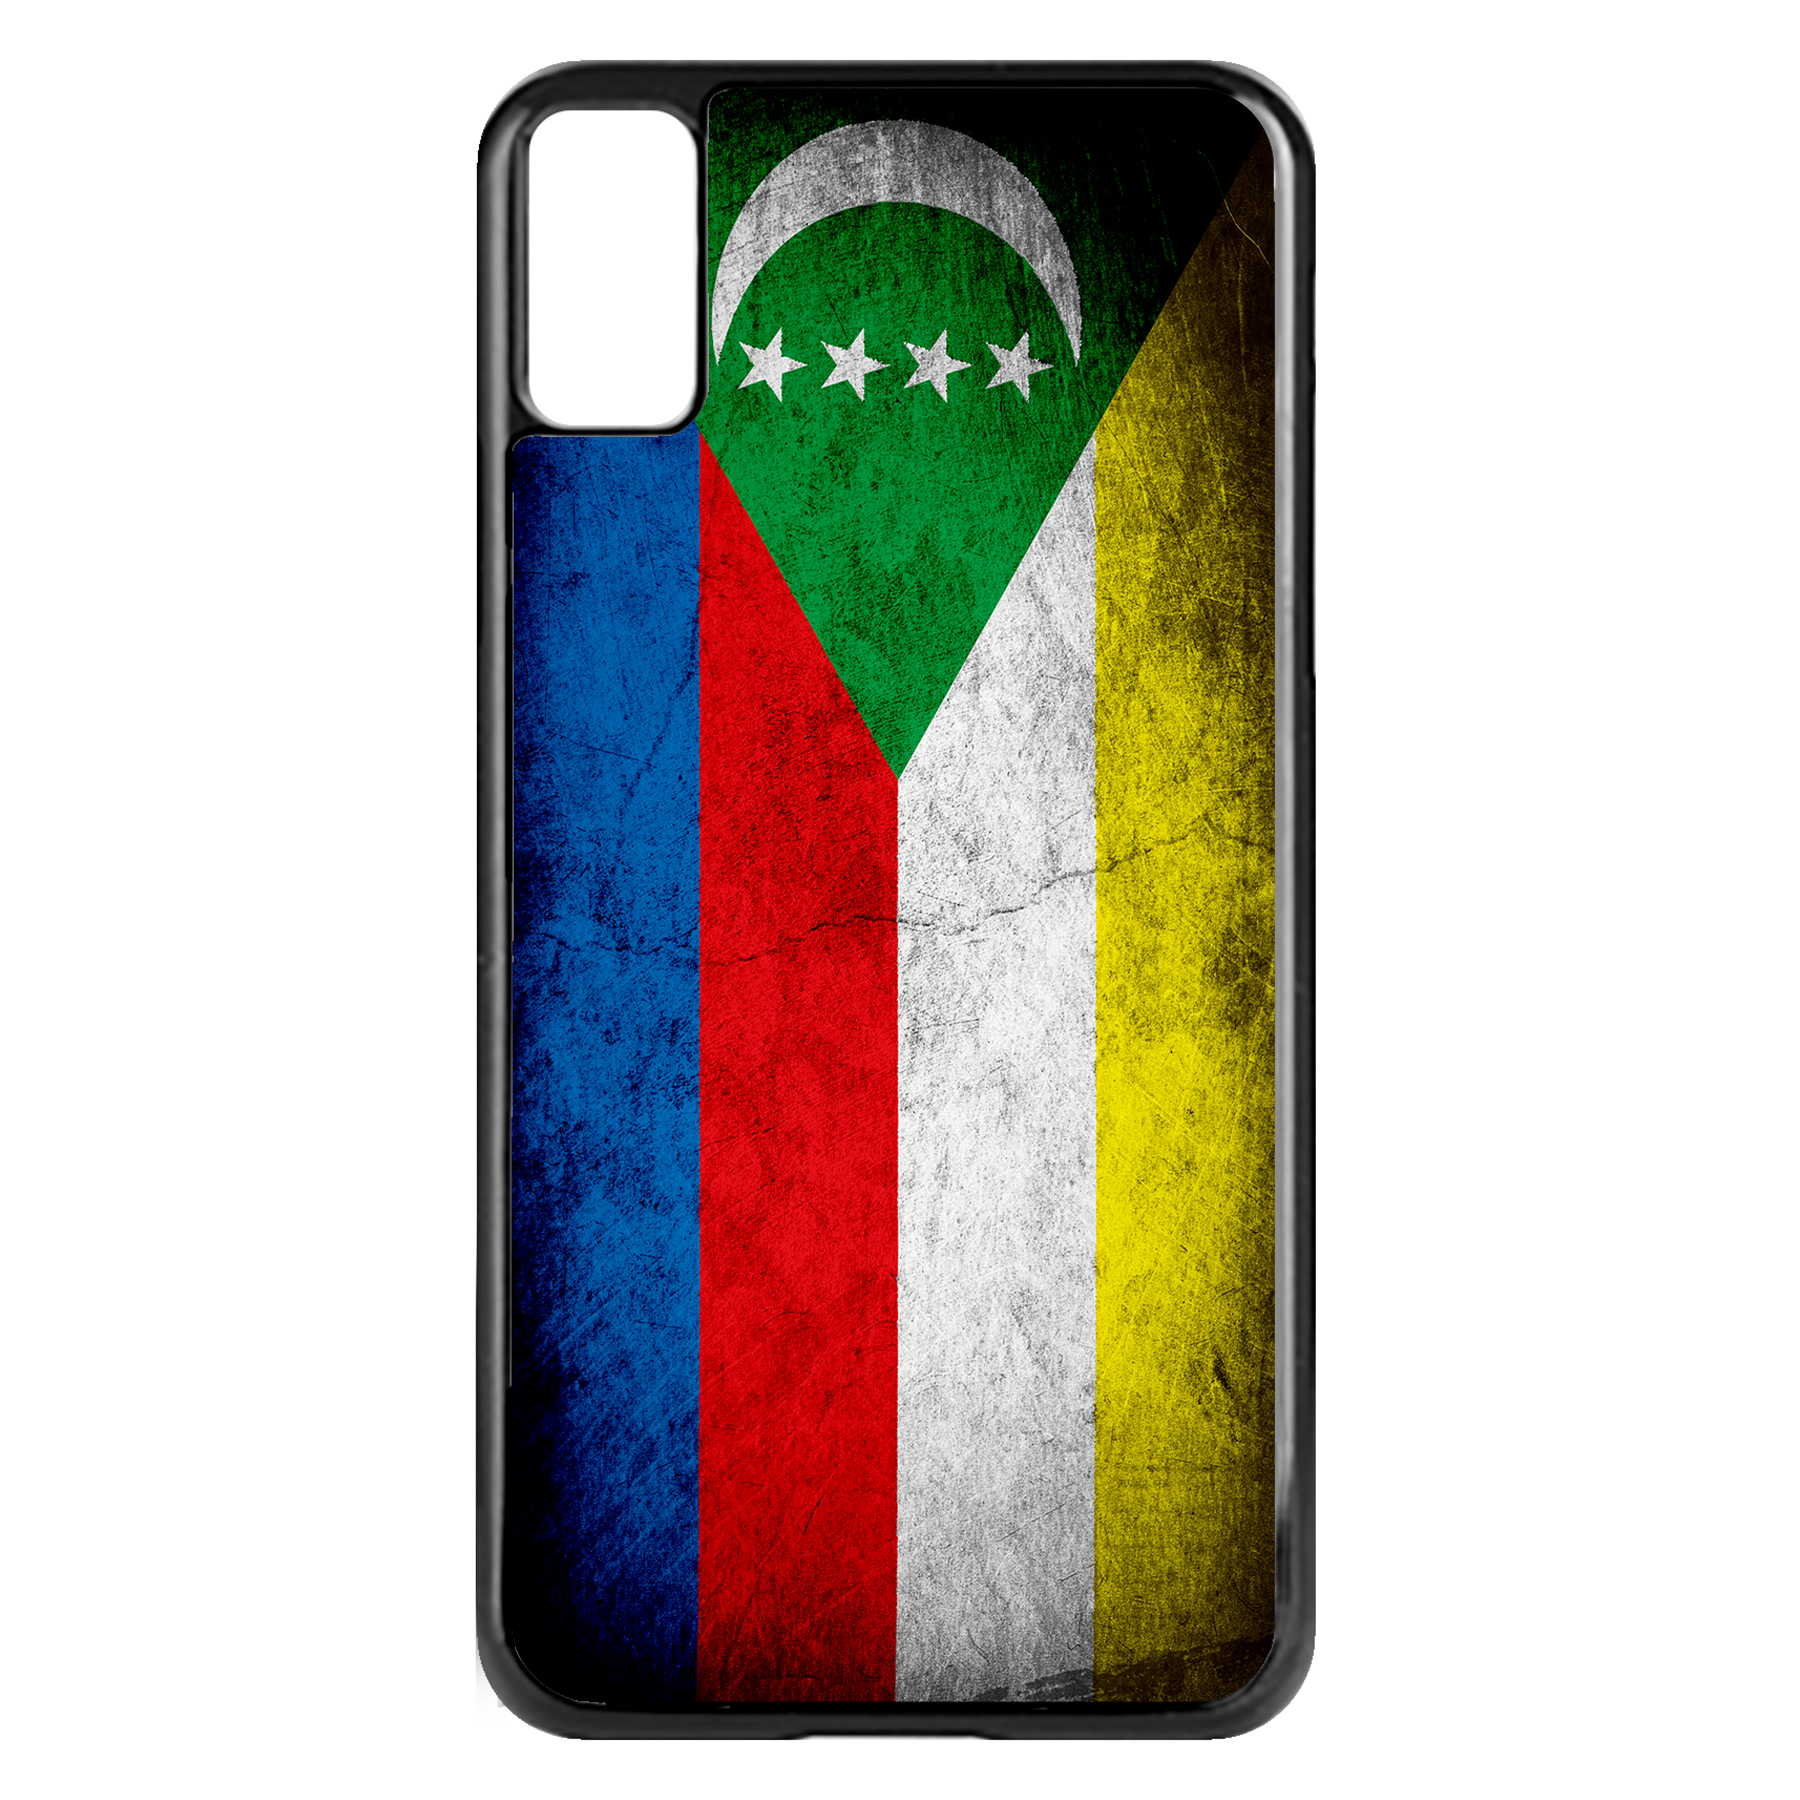 Apple-iPhone-Case-with-Flag-of-Comoros-Comorian-Many-Design-Options thumbnail 69